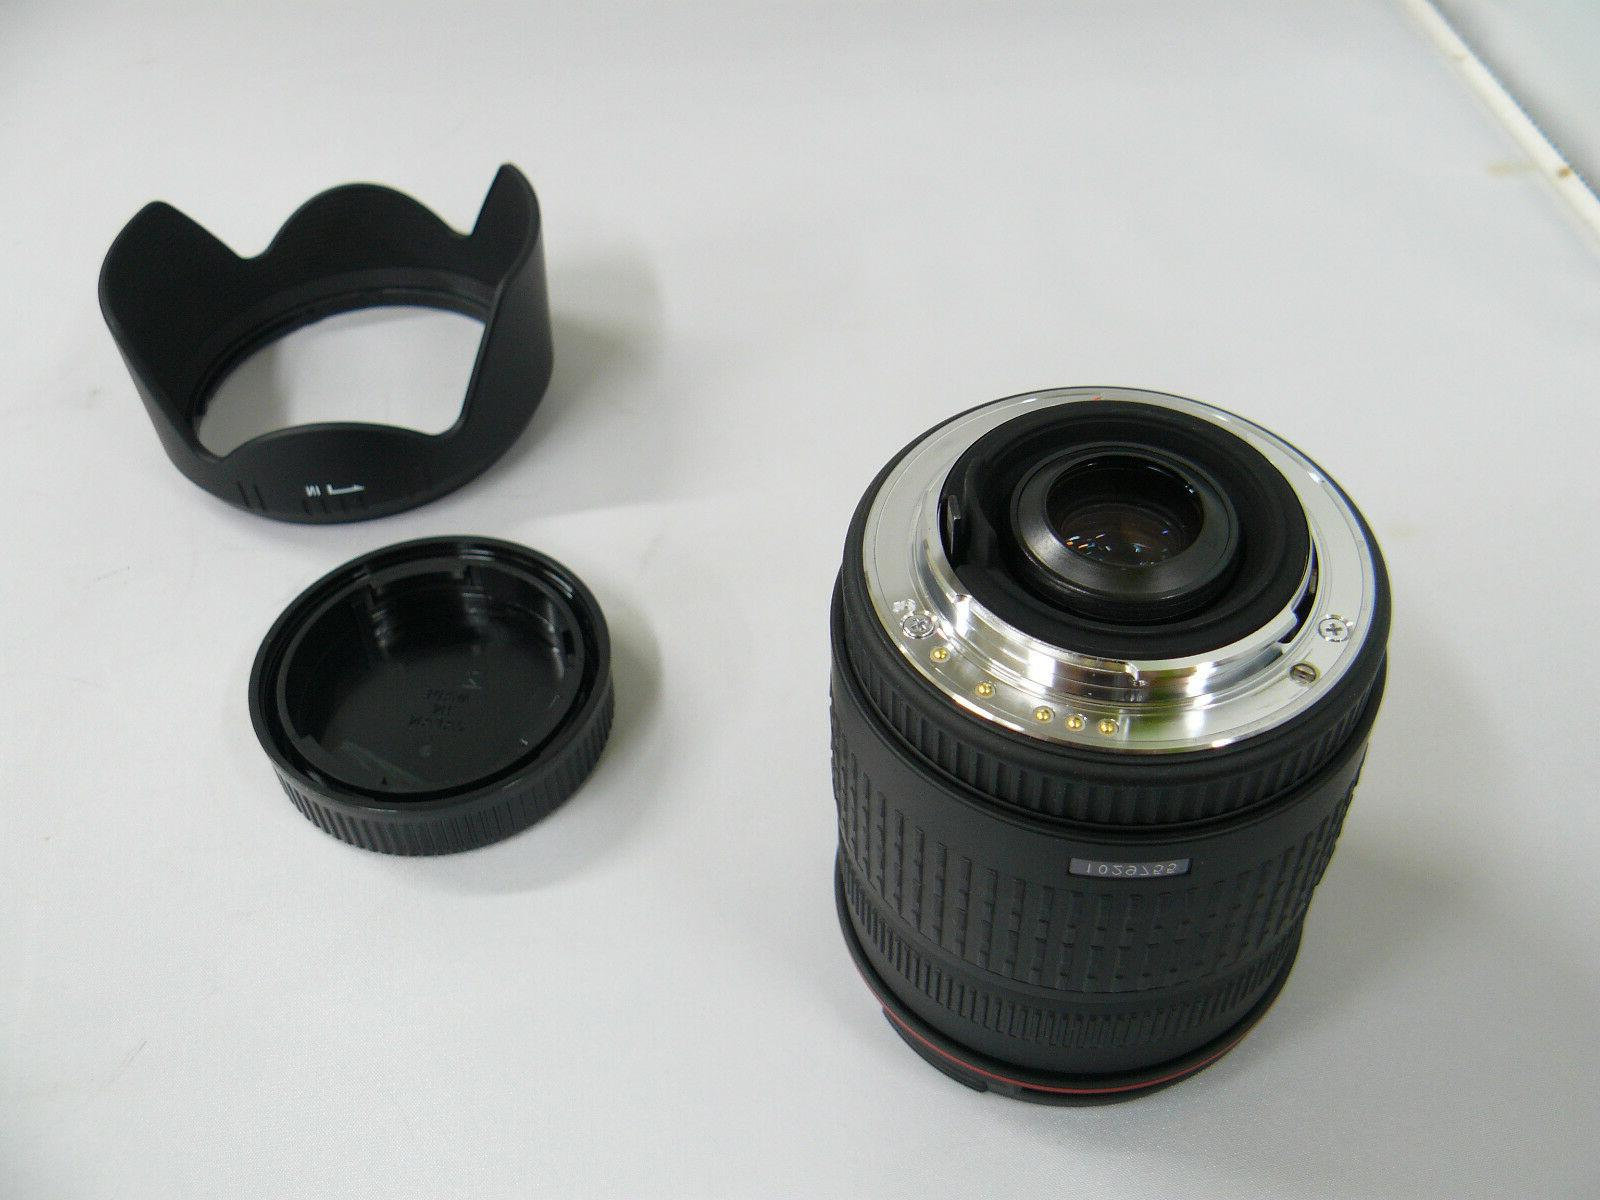 Sigma 28-200mm Hyperzoom for